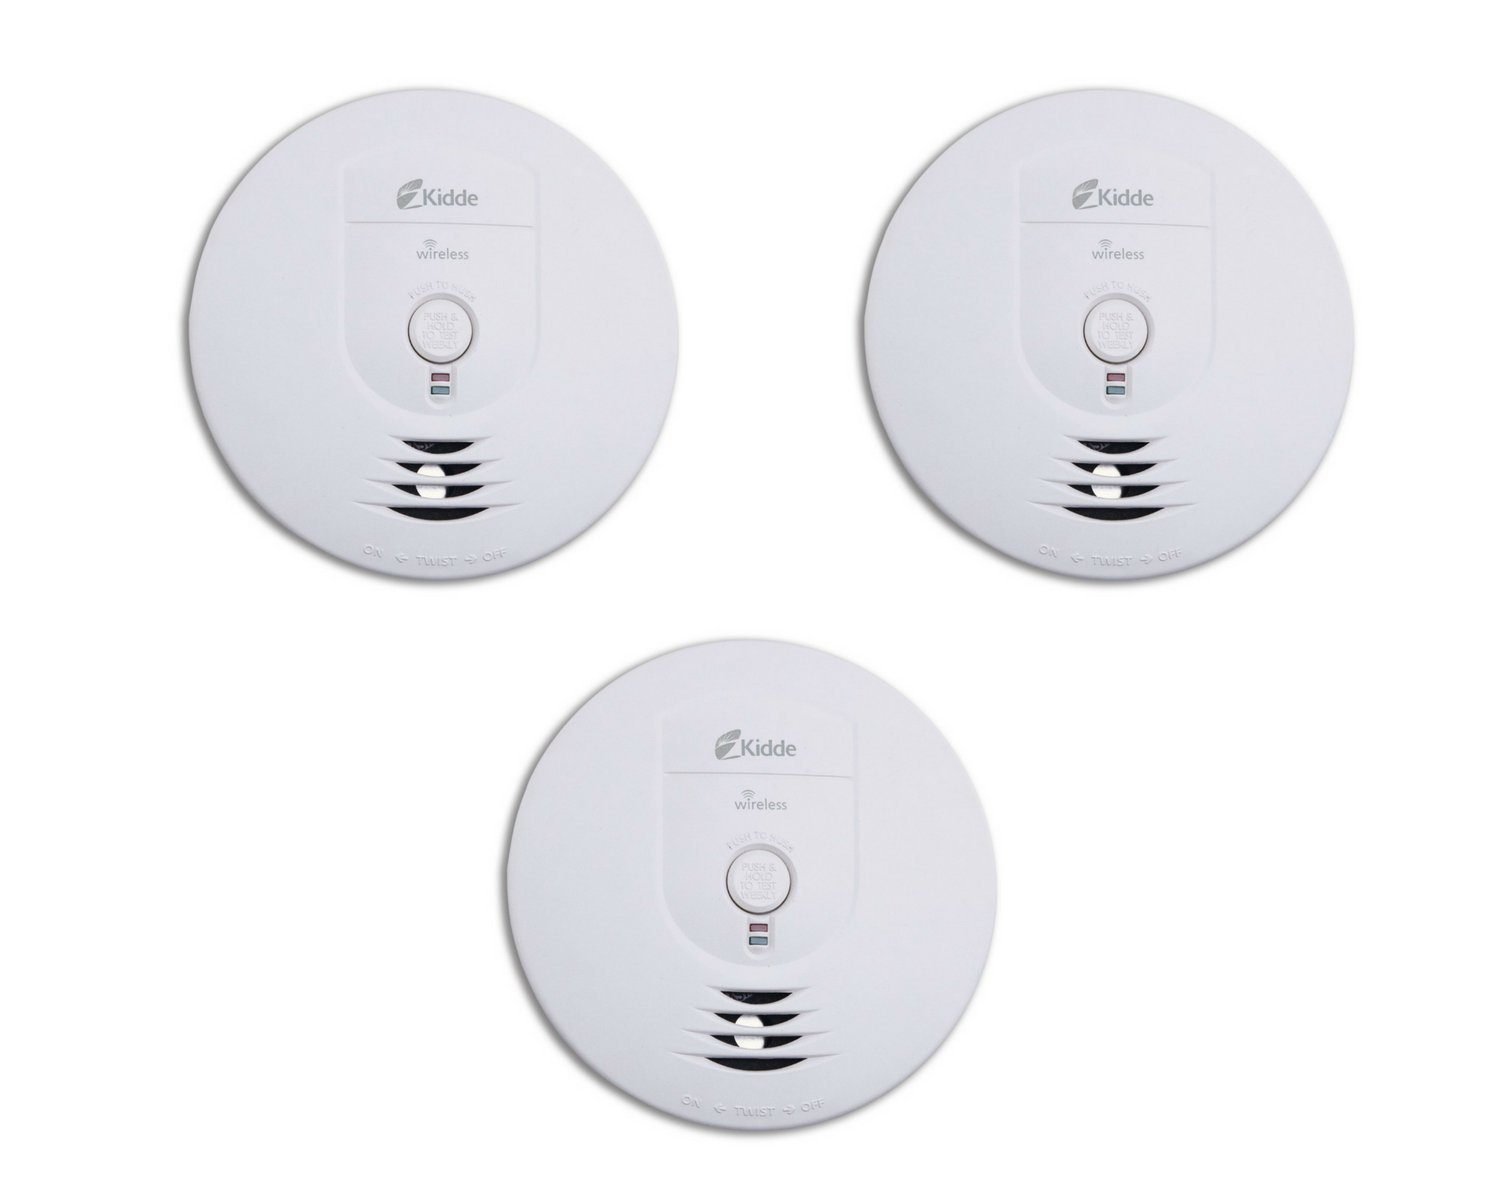 Kidde RF-SM-DC Wireless Interconnect Battery-Operated Smoke Alarm (Pack of 3) by Kidde